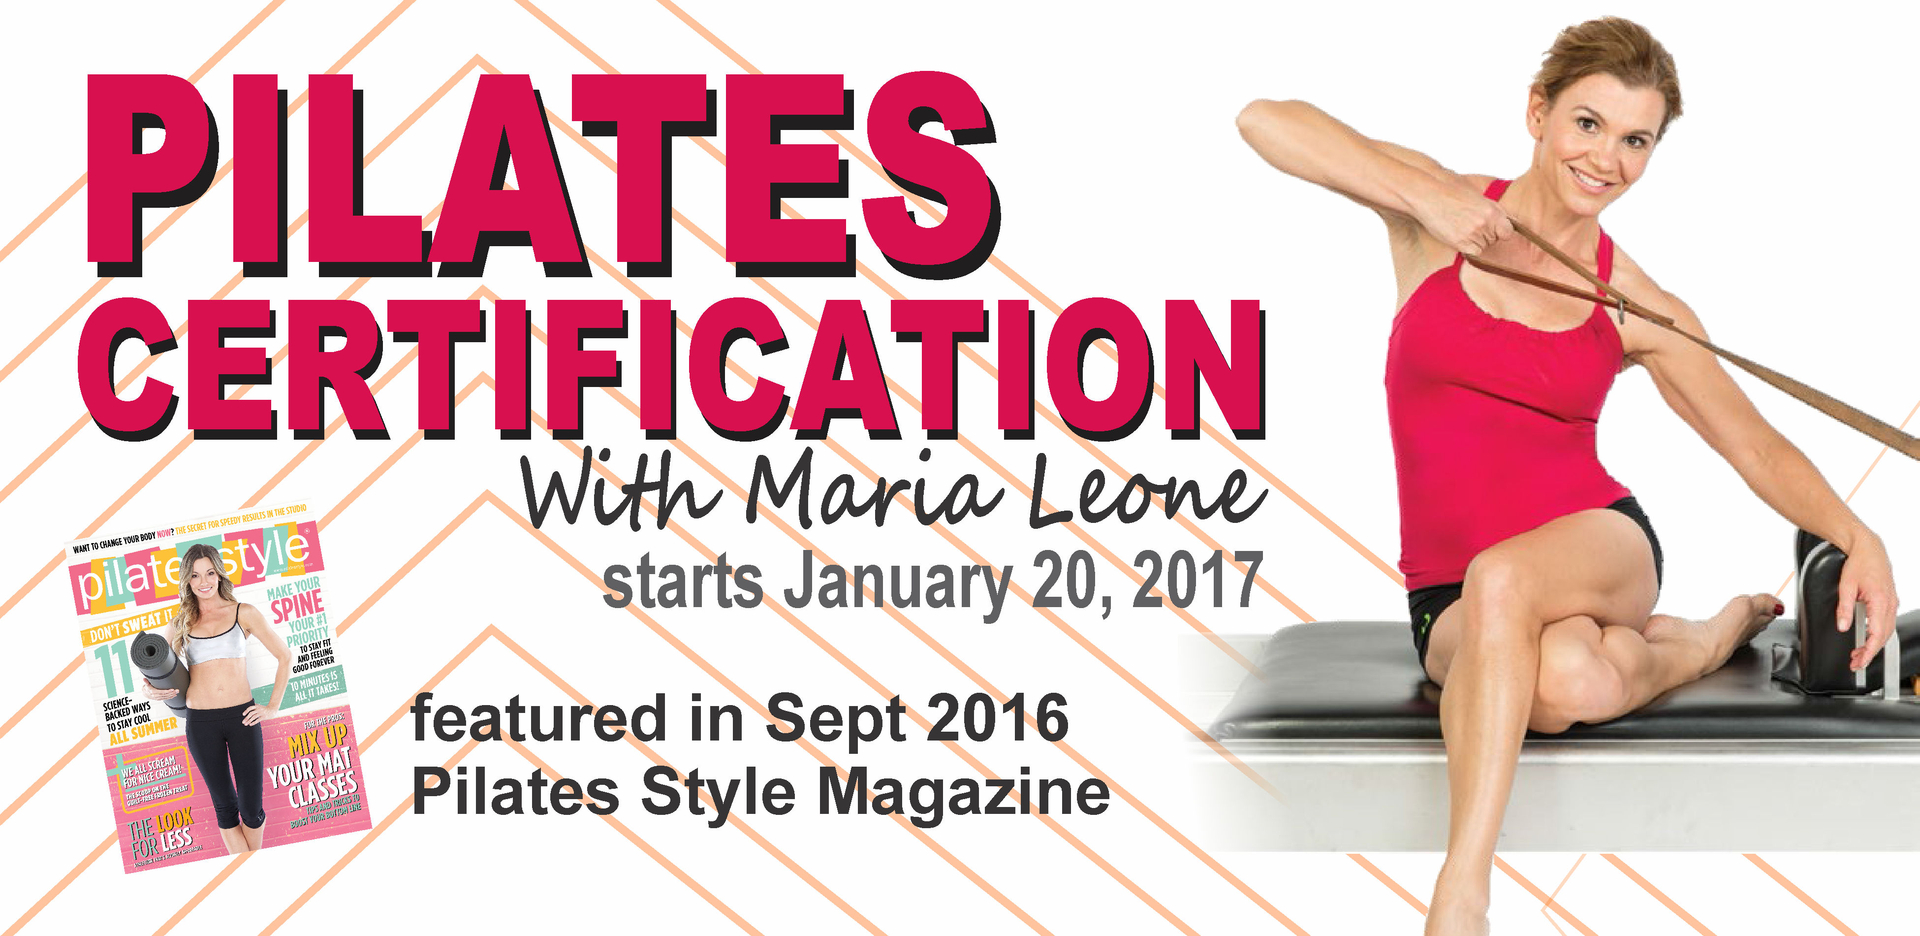 Pilates certification pilates teacher training from instructor training to our renowned pilates on tourcontinuing education conferences to our exciting balanced body barre program we are committed to 1betcityfo Choice Image